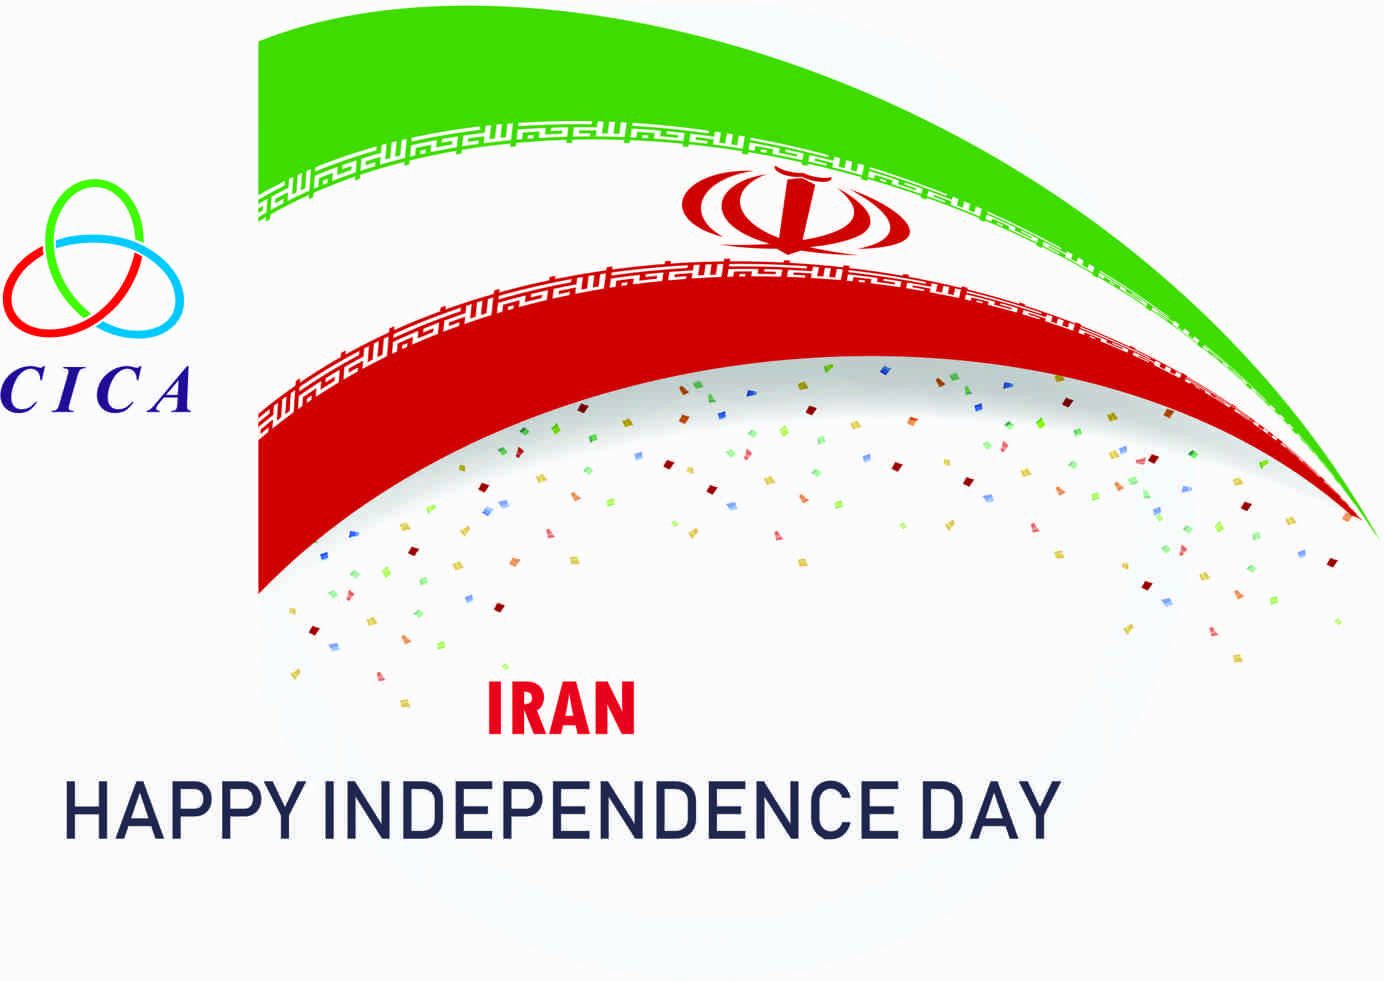 On behalf of the СICA Secretariat please accept warm congratulations and best wishes to the people of the Islamic Republic of Iran @irankazakhstan on the happy occasion of the National Day!